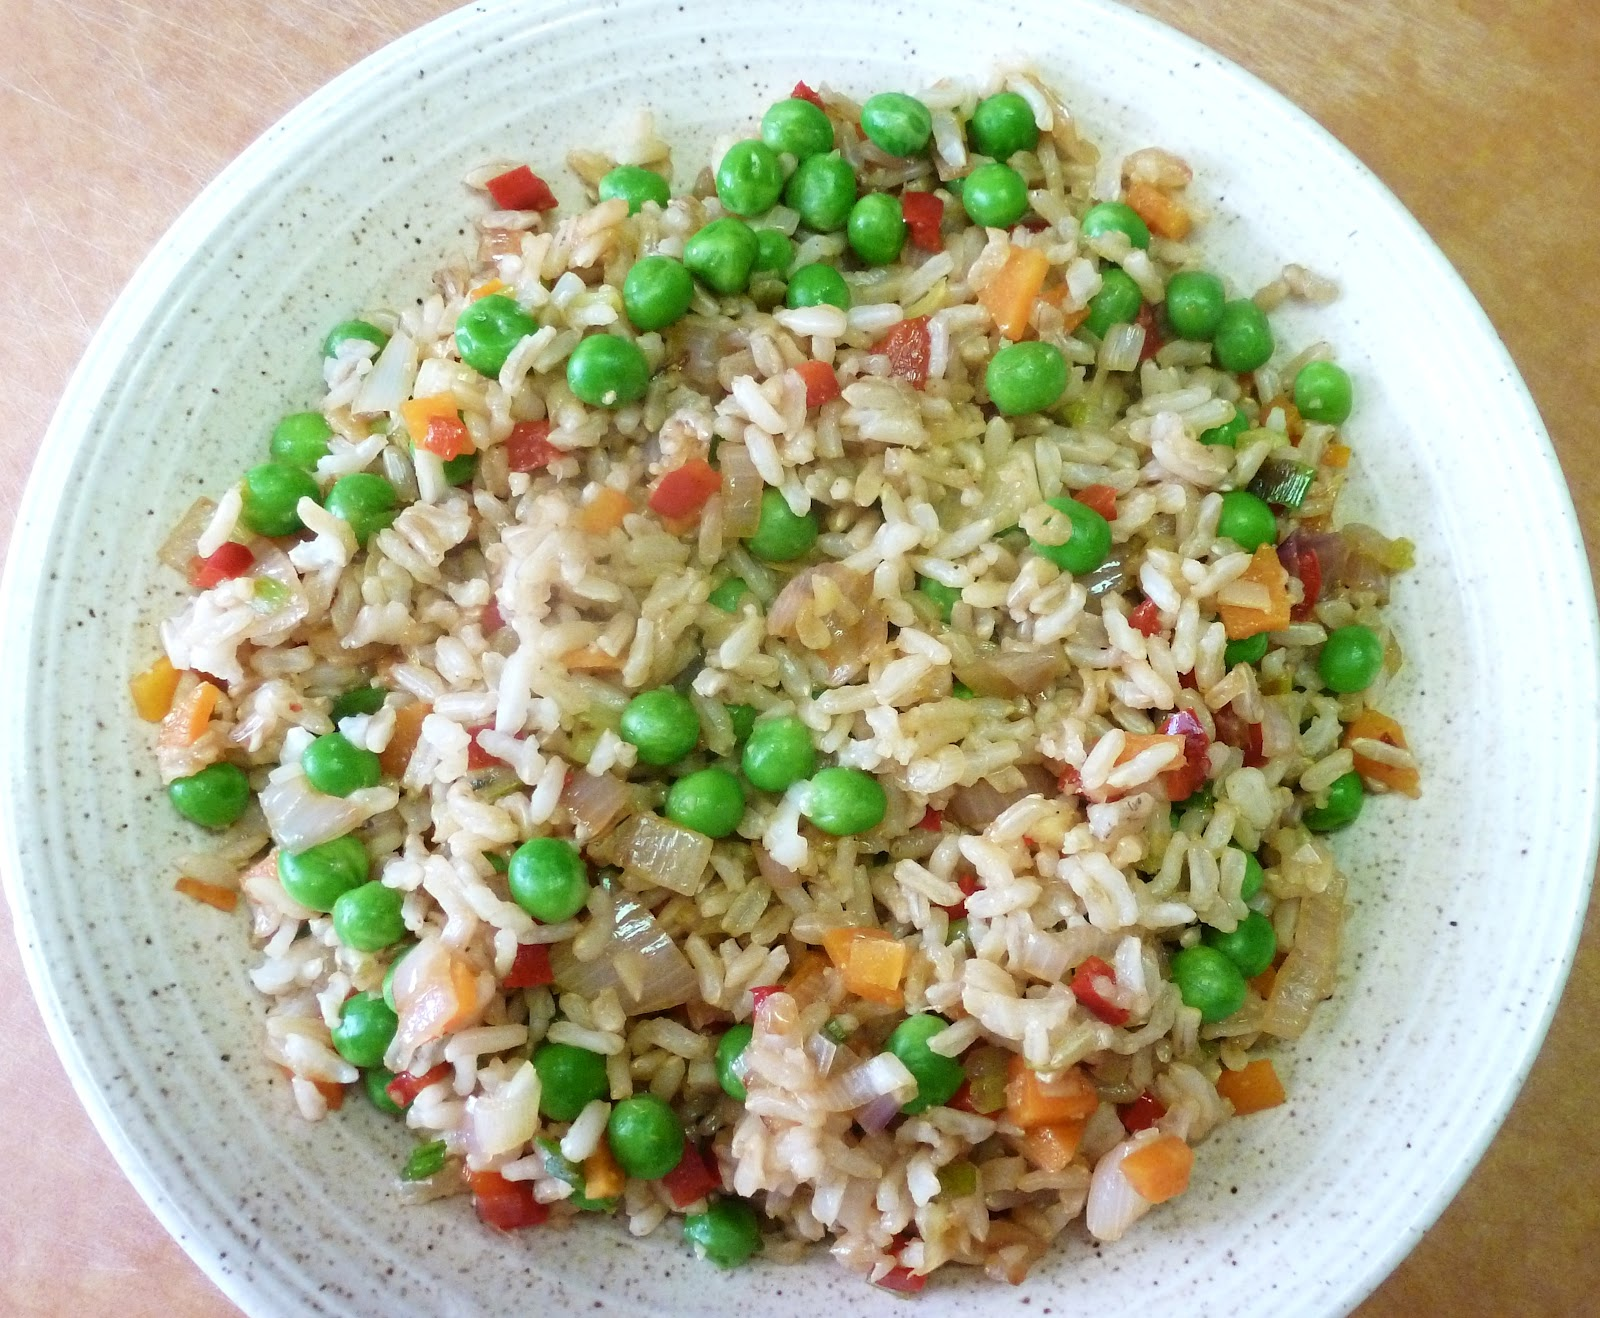 My Adventures Testing 1000 Vegan Recipes: Vegetable Fried Rice